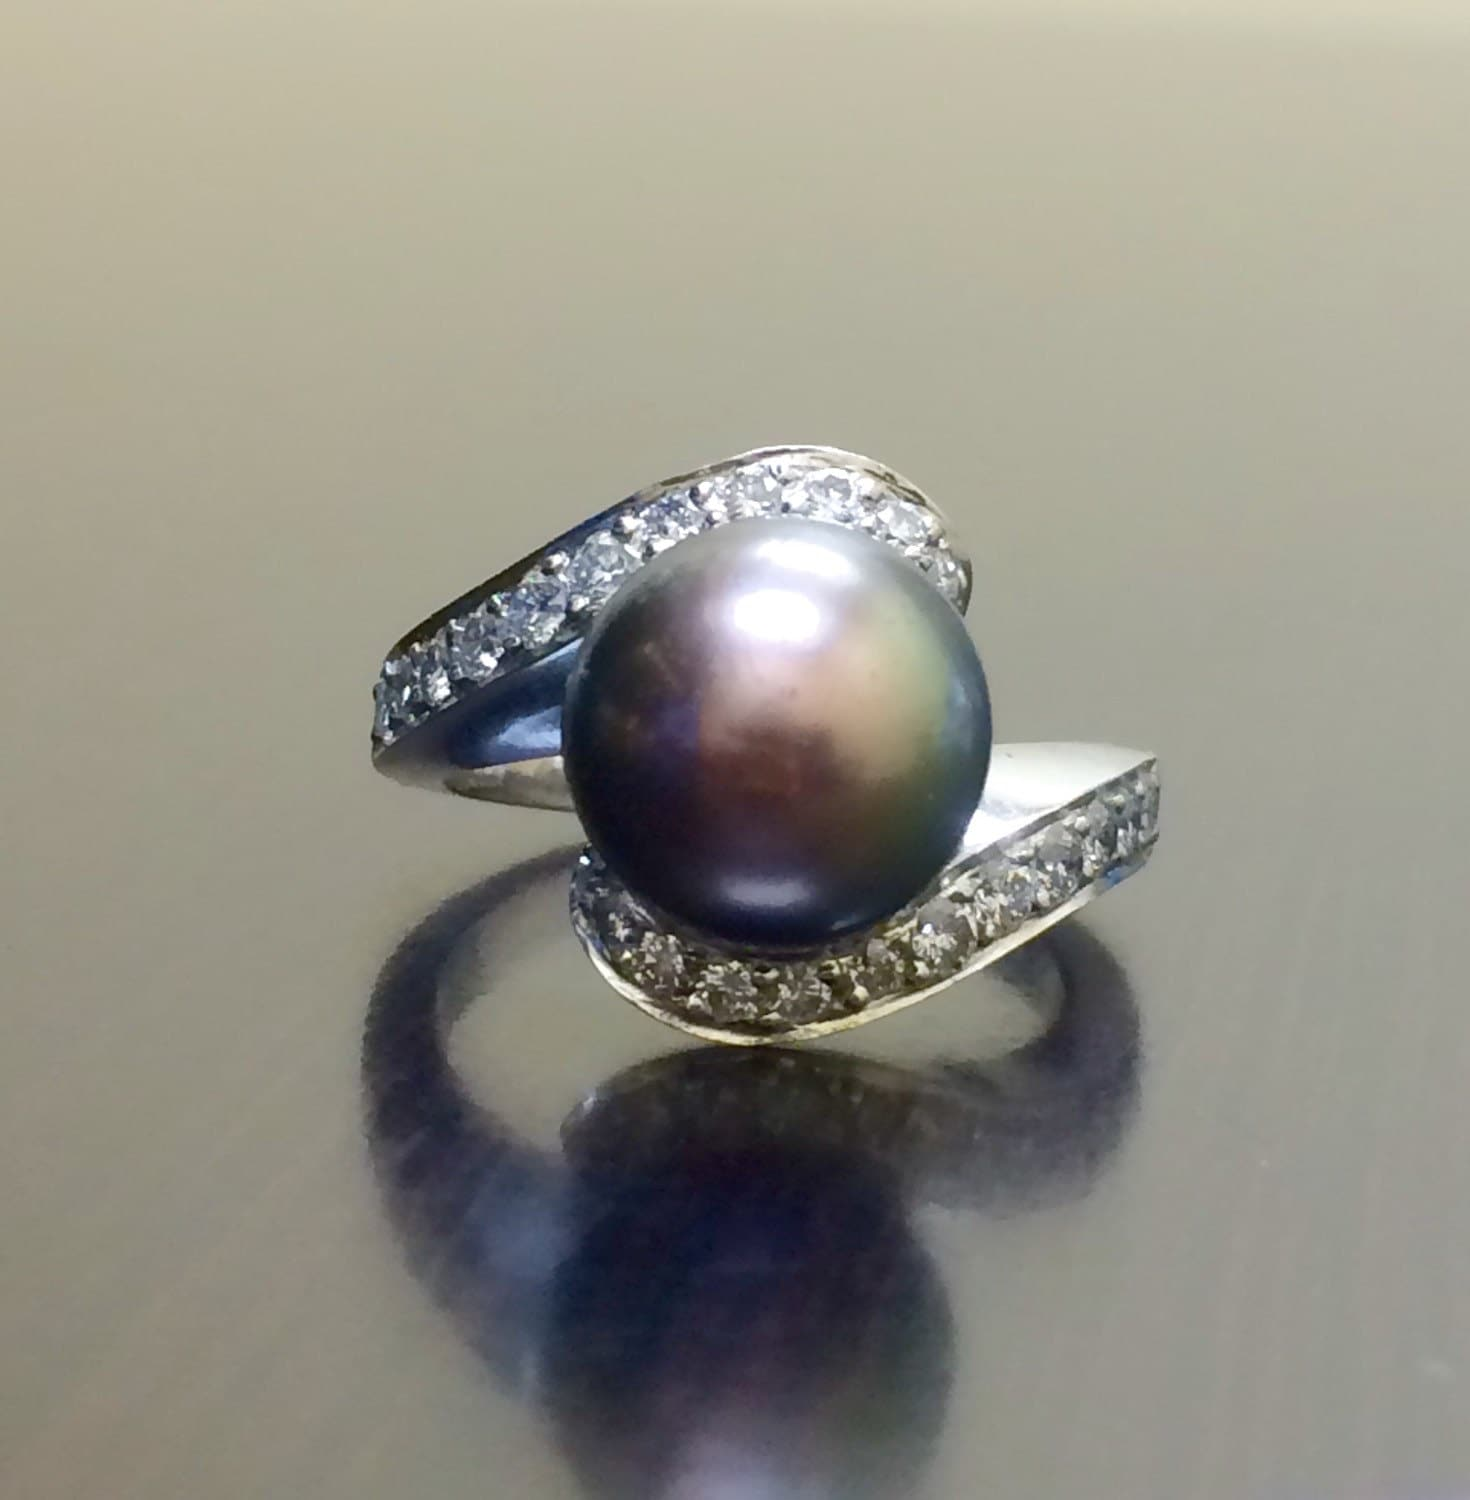 pearls pearl kataoka ring catbird on save engagement winter